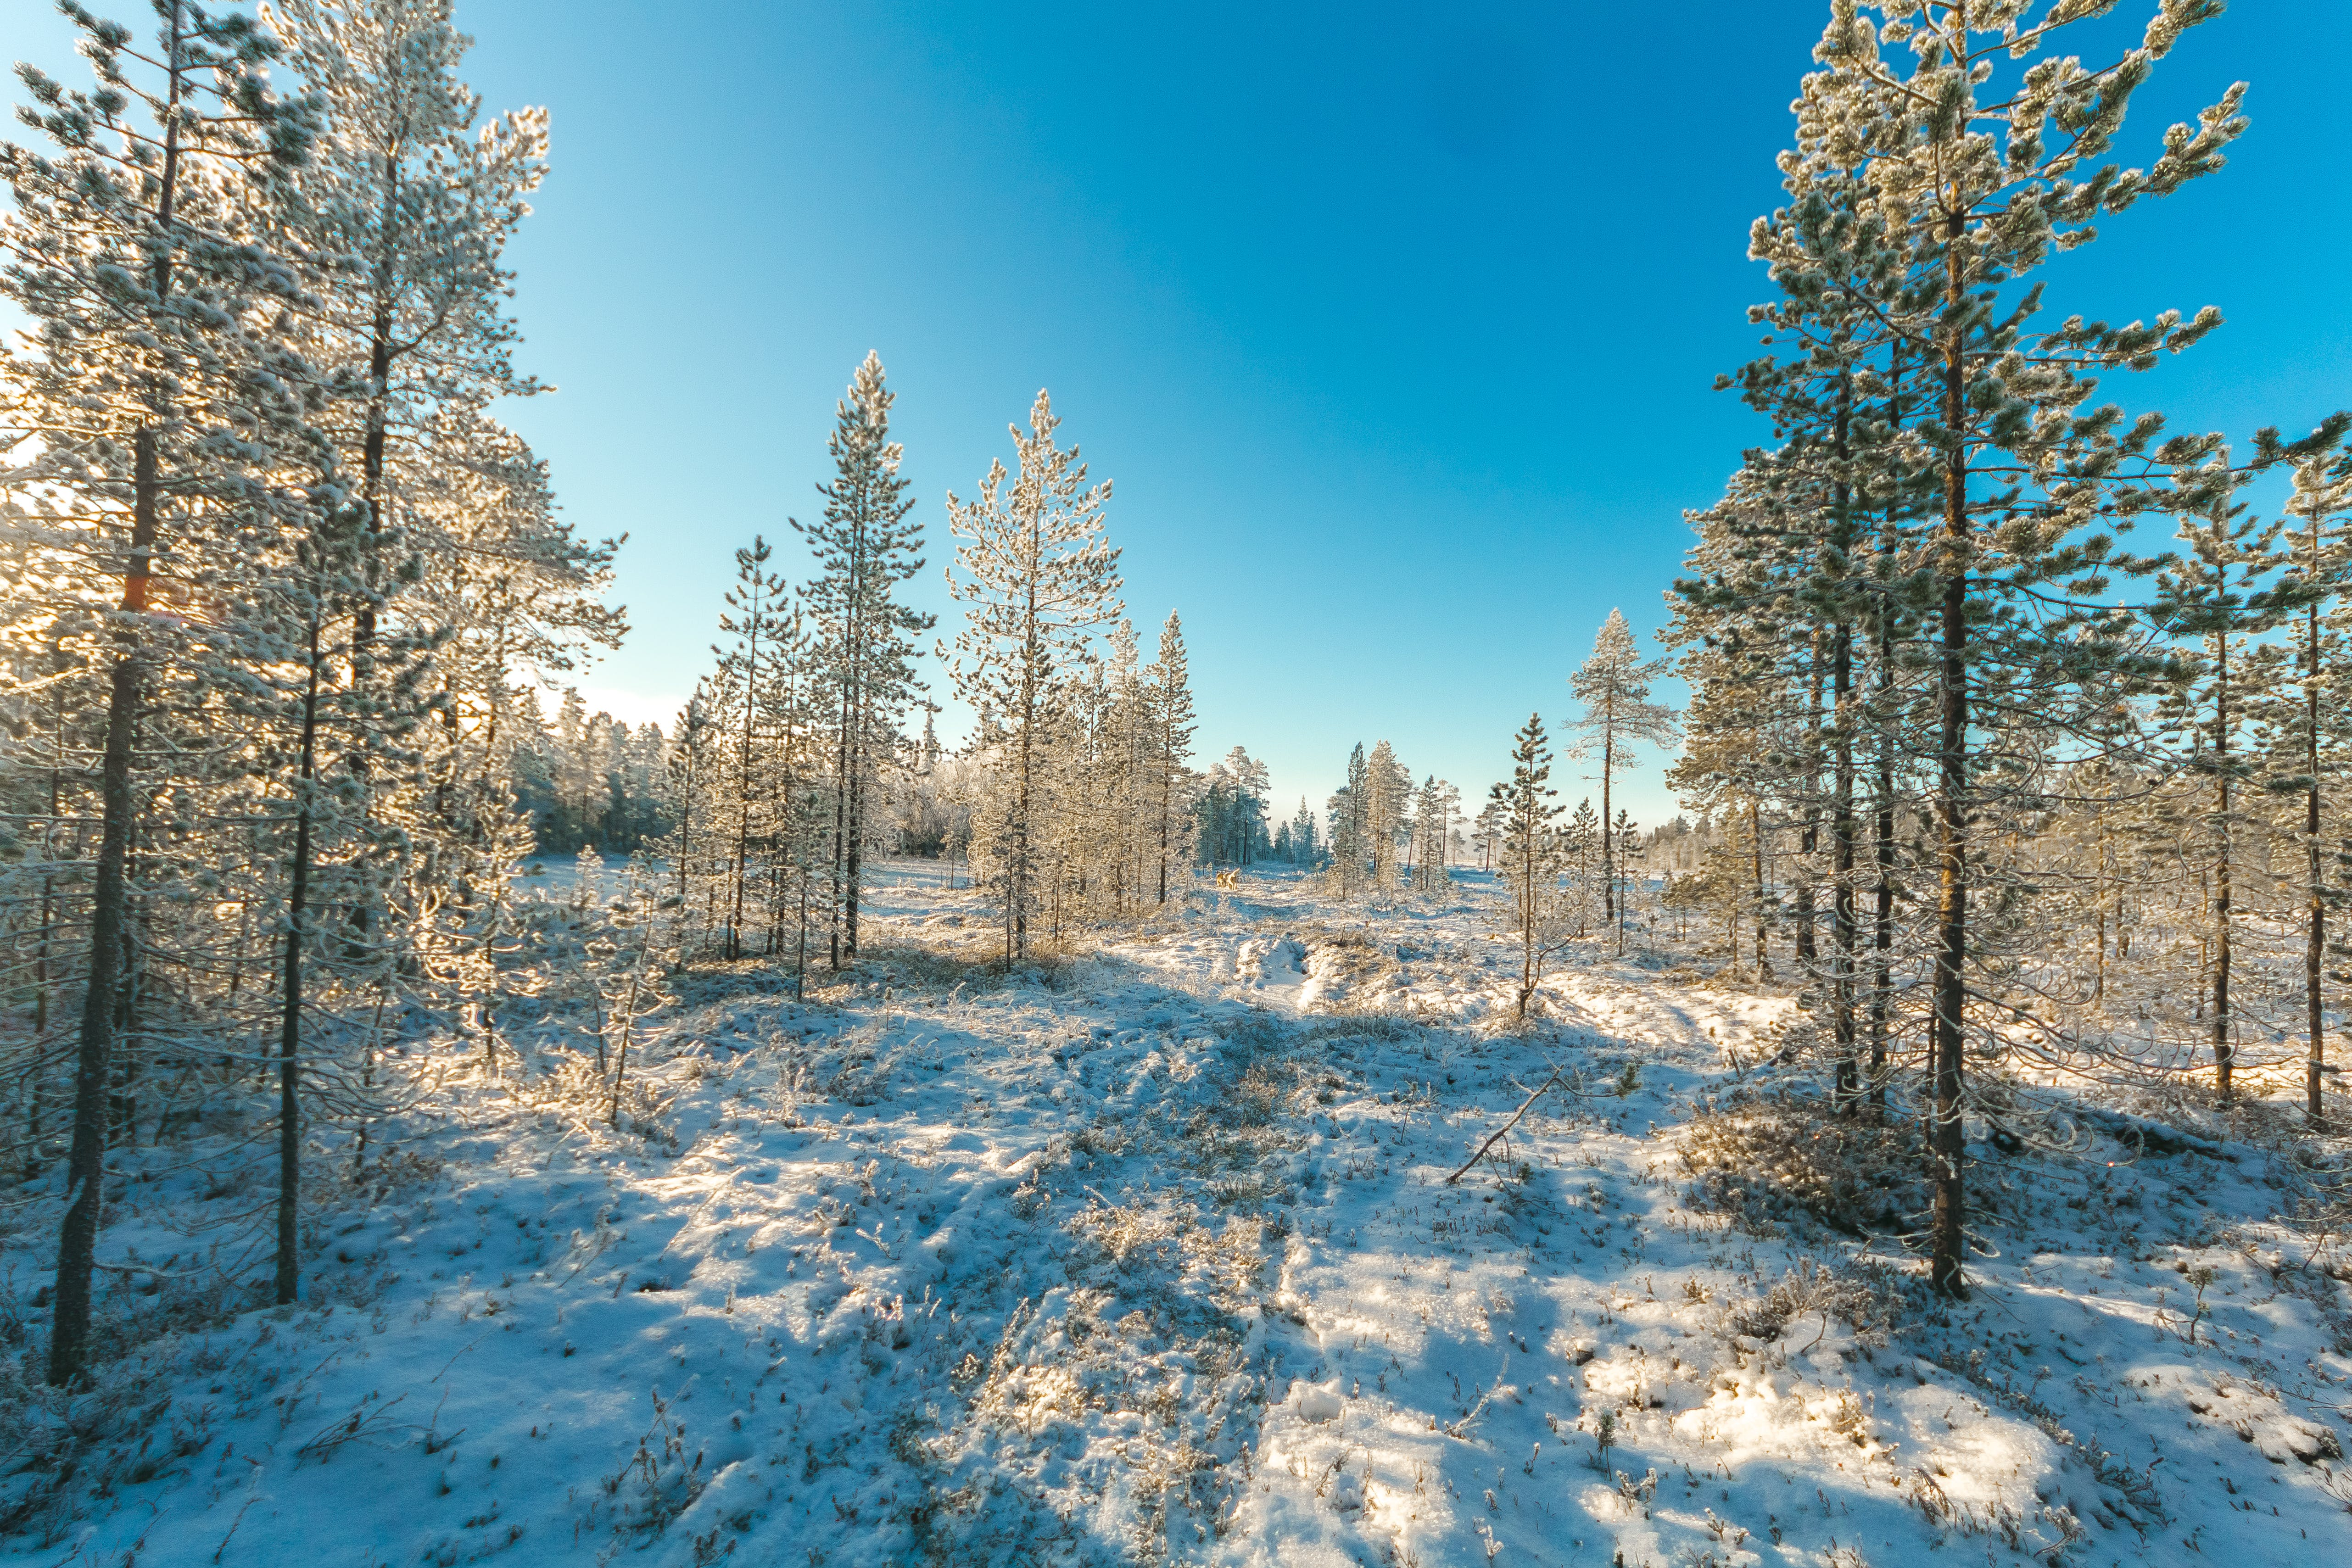 Snow Covered Field and Green Leaf Trees Under Blue Sky